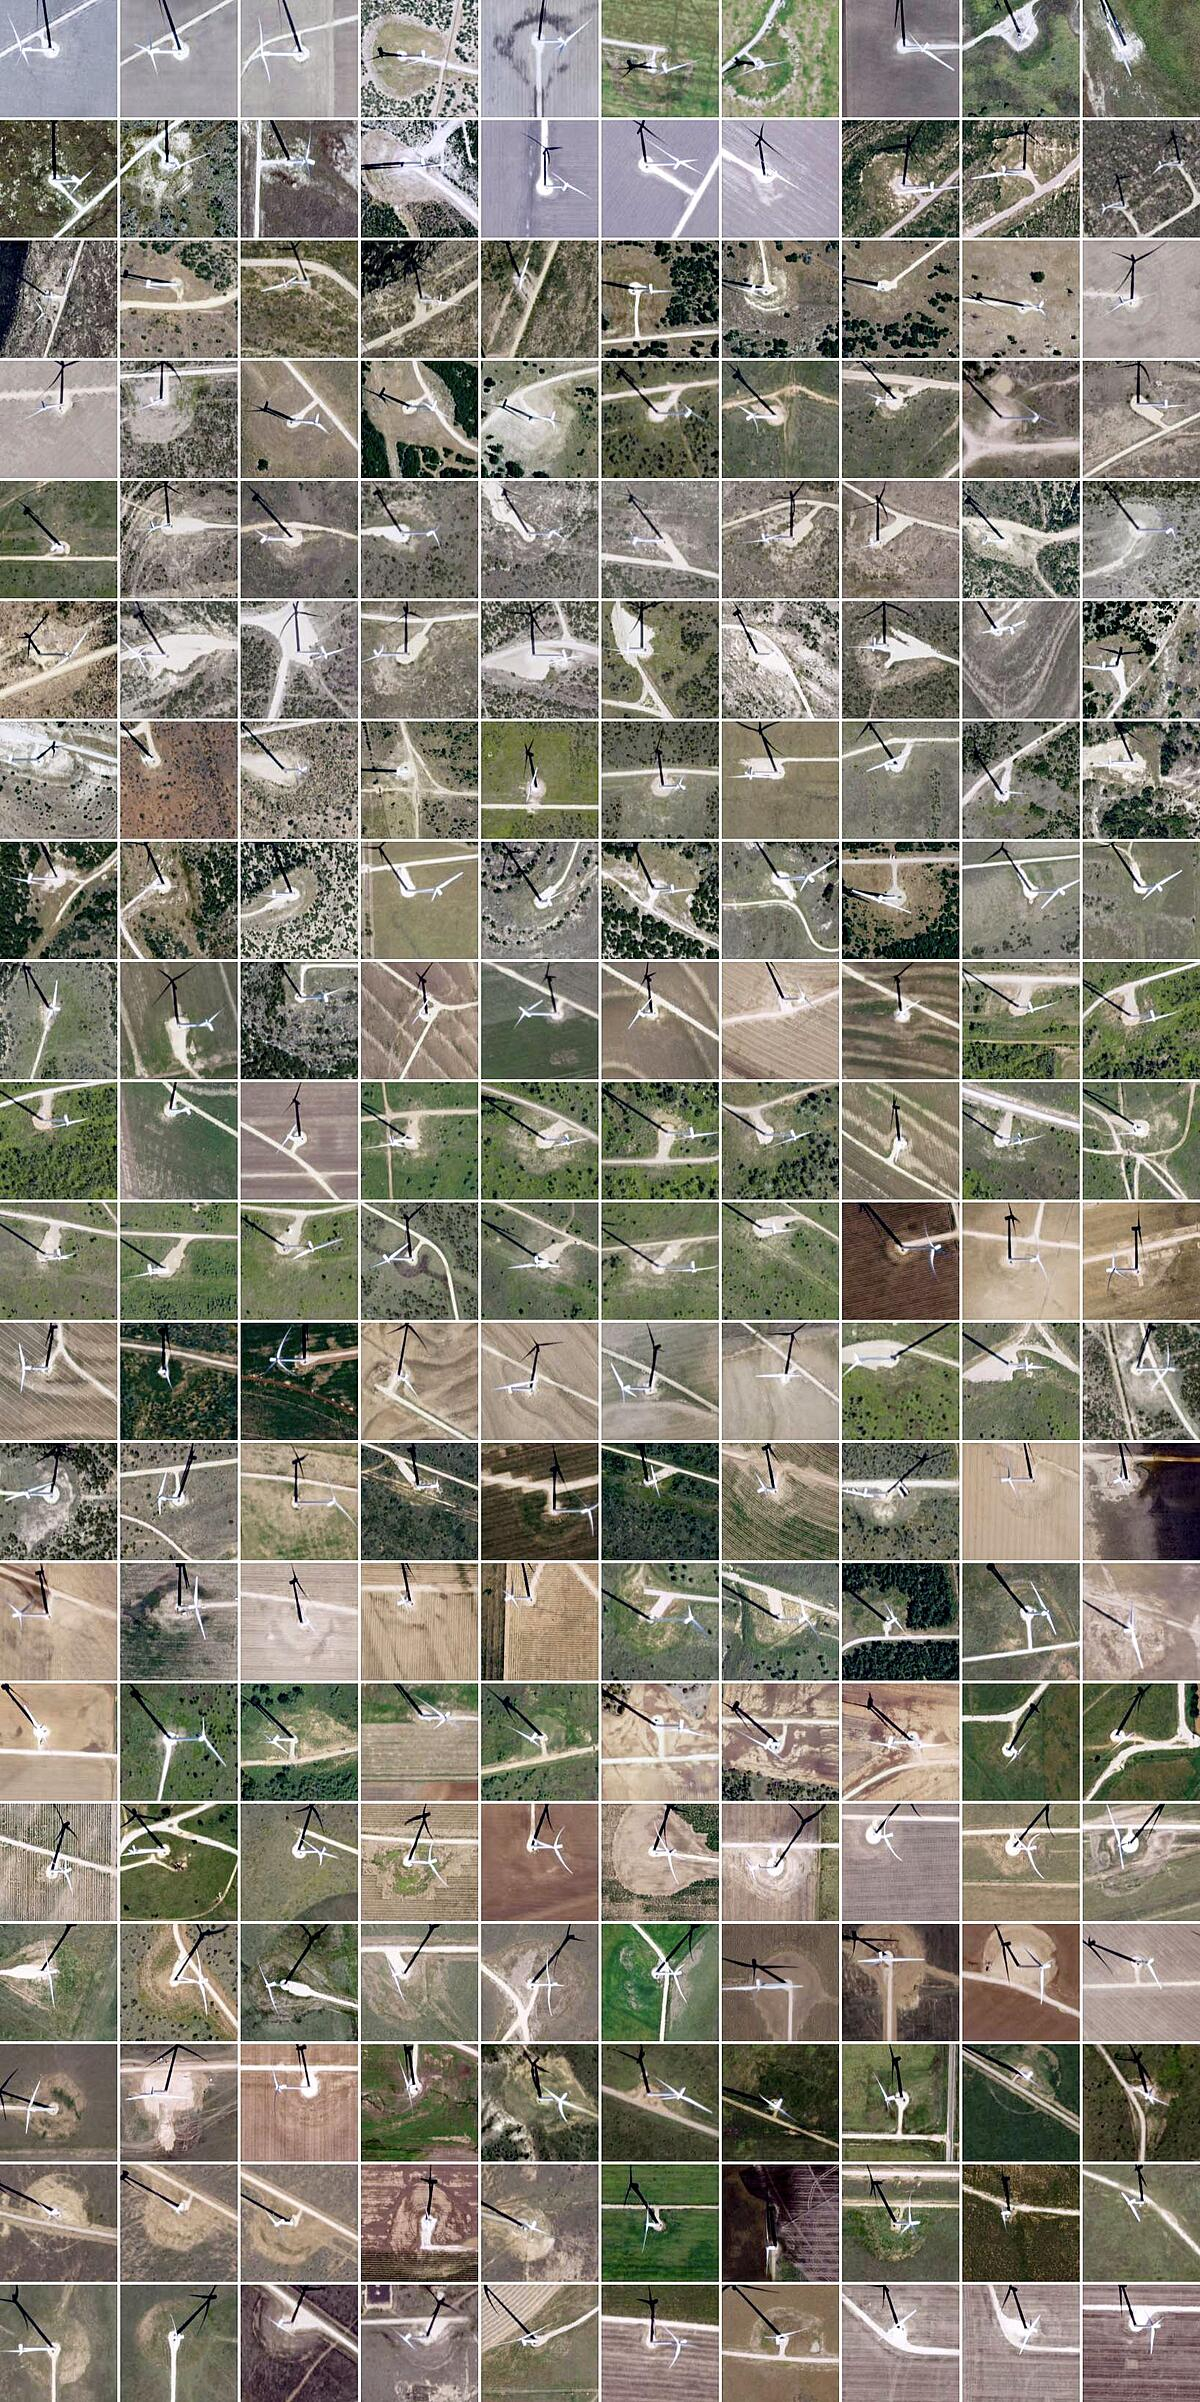 Image tiles of wind turbine detections in Texas